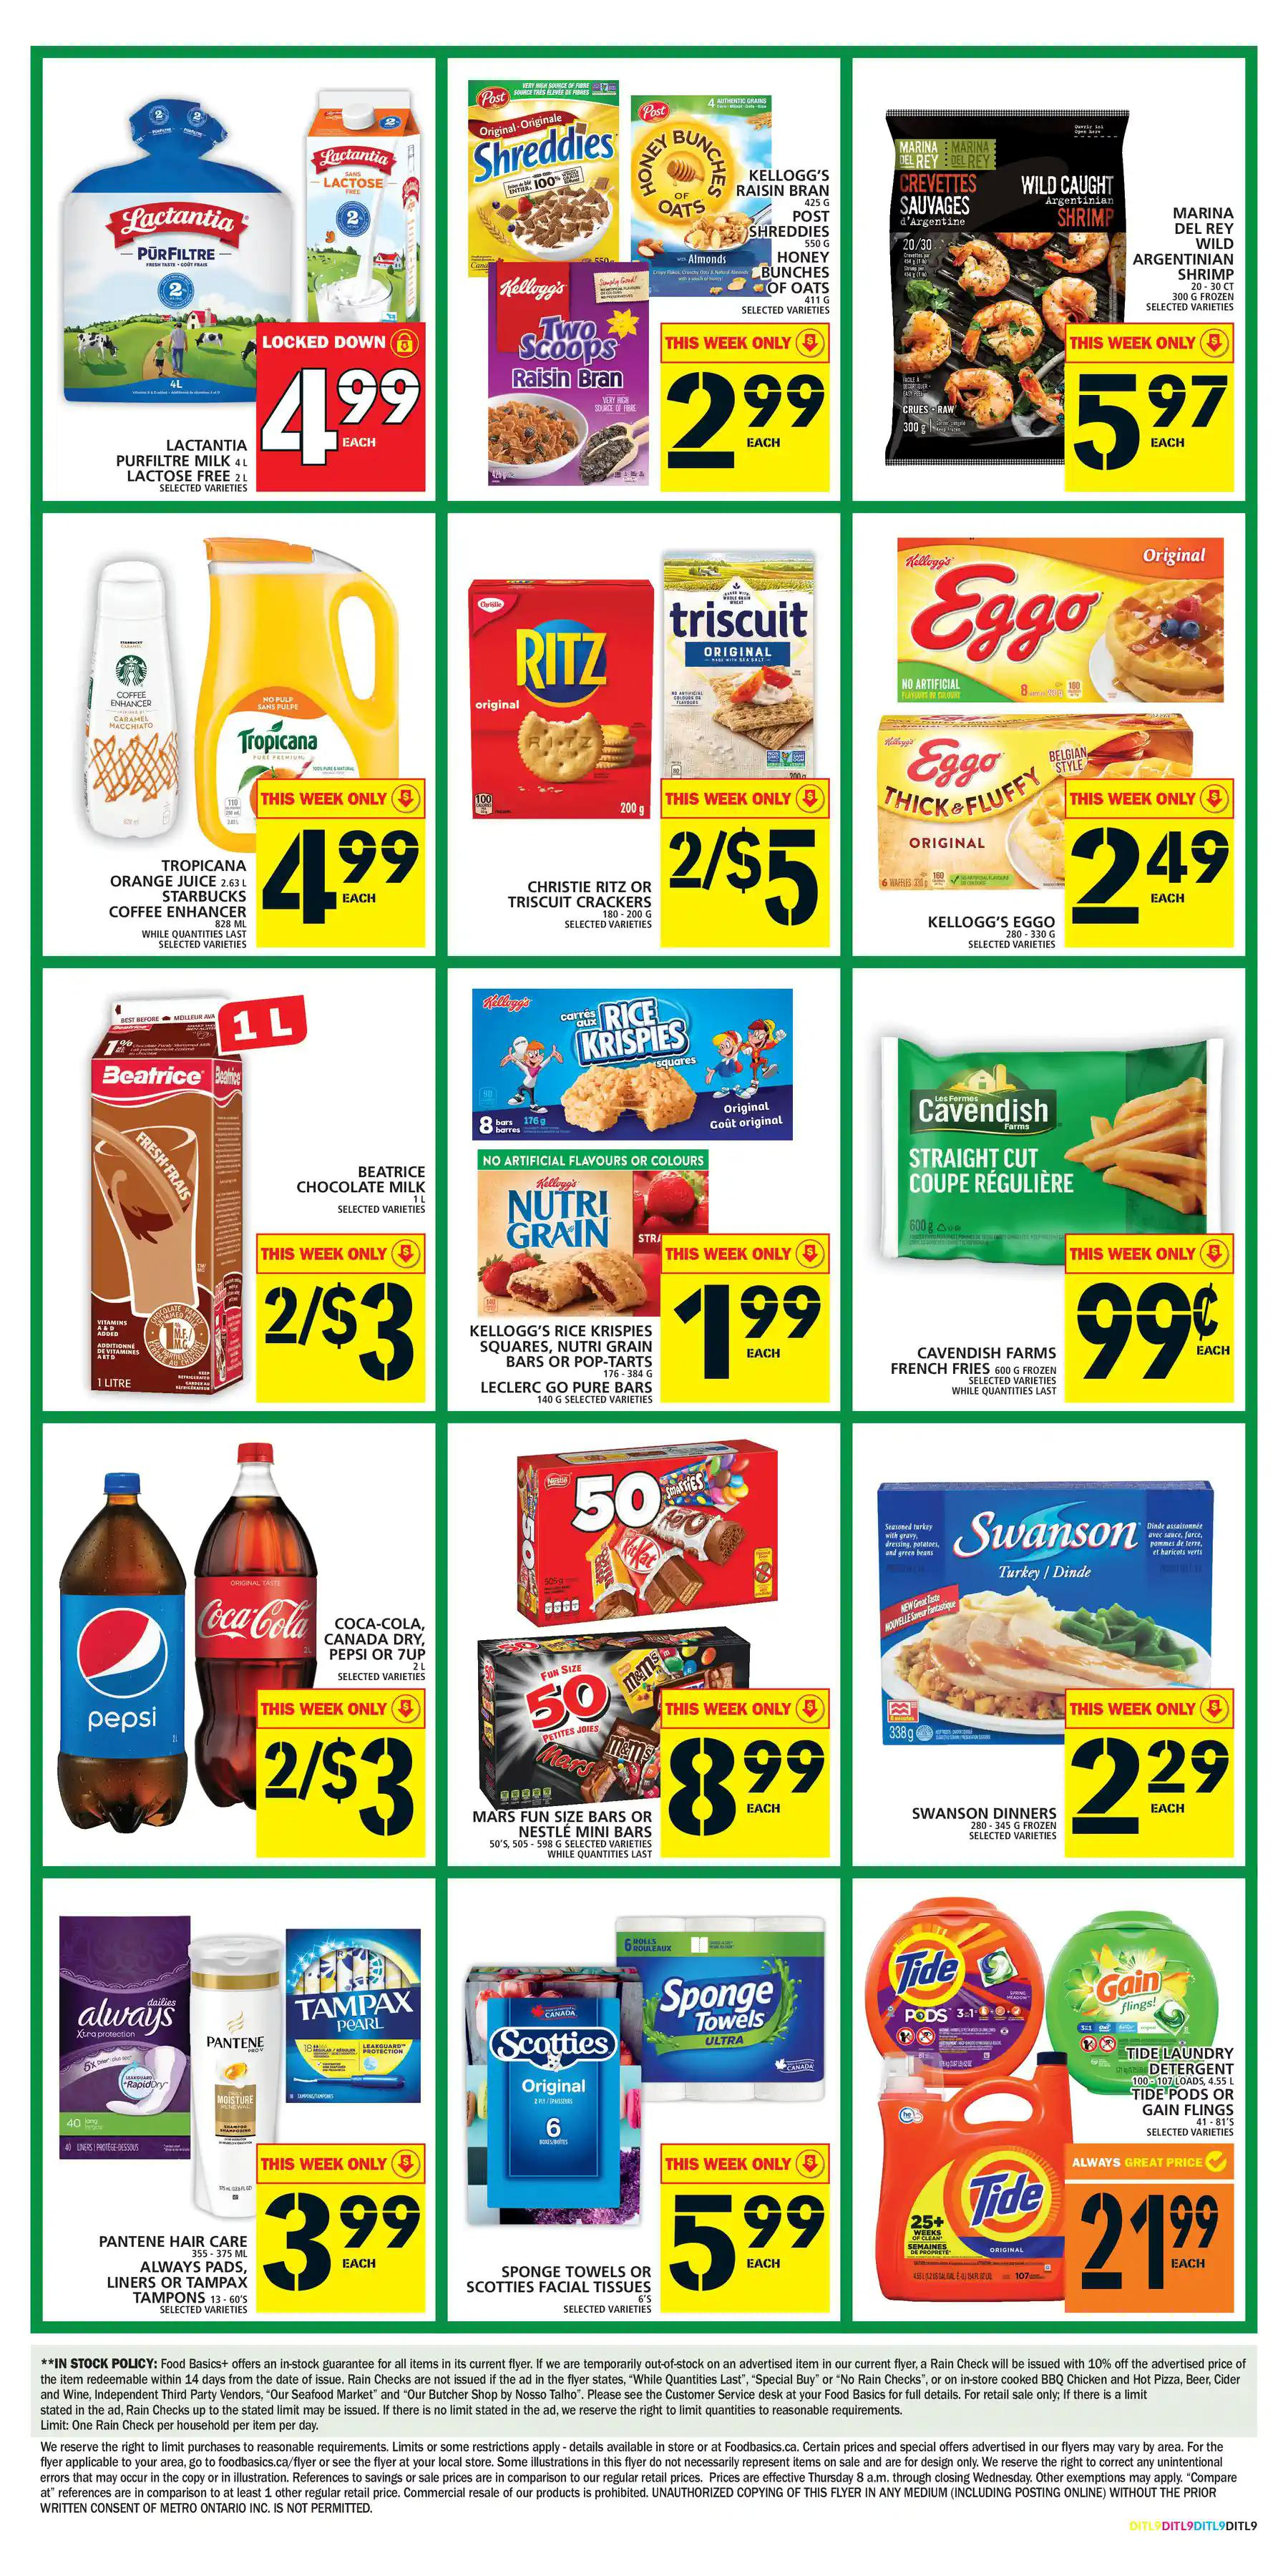 Food Basics - Weekly Flyer Specials - Page 6